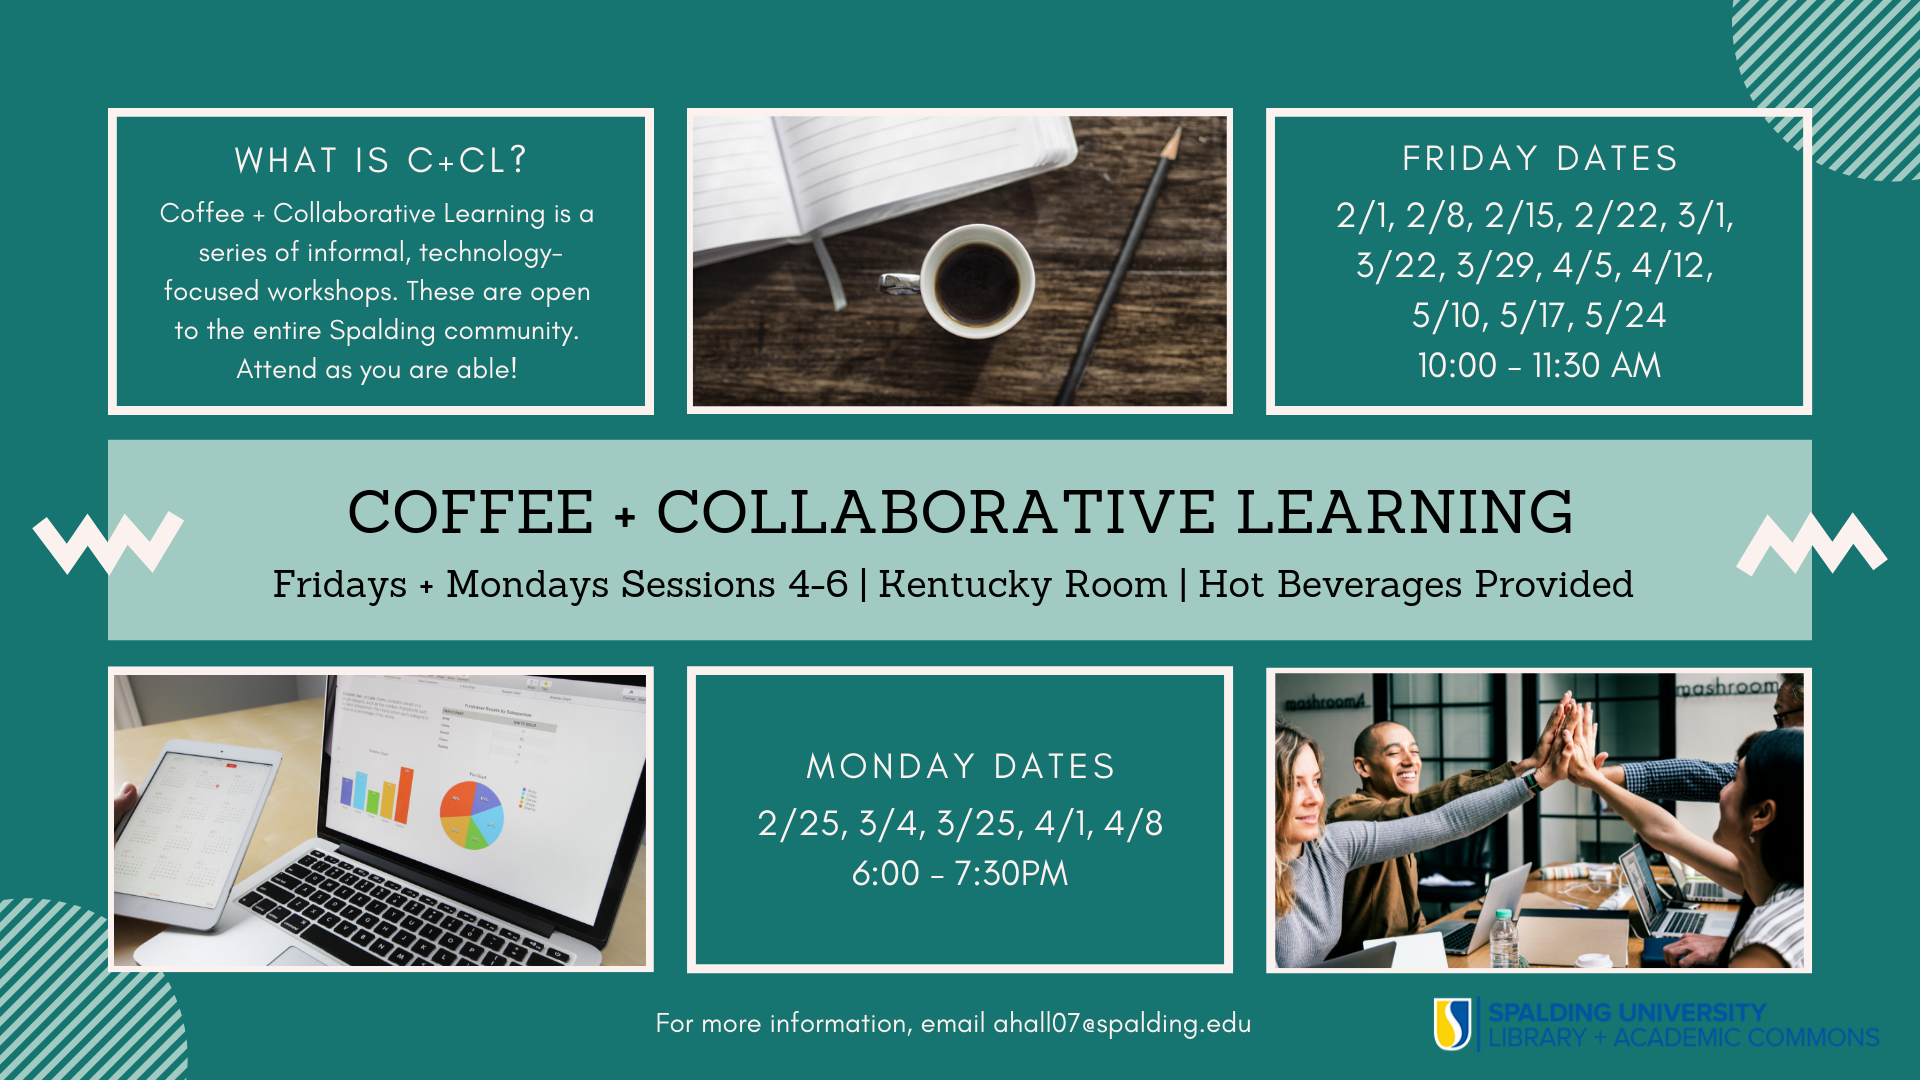 Coffee + Collaborative Learning is a series of collaborative professional development workshops open to the entire Spalding community. At each meeting we will watch a digital training video as a group and work together to learn new skills. Come prepared to learn and share!    We will meet on Friday mornings from 10-11:30am, and on select Monday evenings from 6-7:30pm during Sessions 4-6 in the Kentucky Room in the Library. Hot beverages will be provided.    Attend as you are able and interested - feel free to join us for one, some, or all of the dates! For more information email ahall07@spalding.edu.